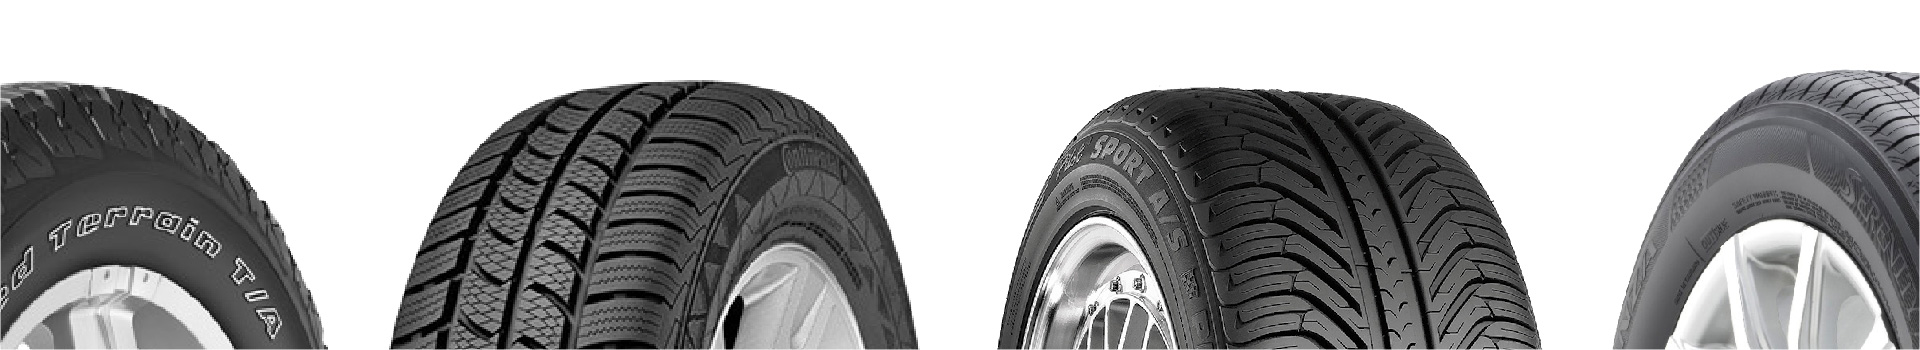 Find top brand tires like Michelin, Bridgestone, Goodyear, and Pirelli at getTREAD Mobile Tire Shop